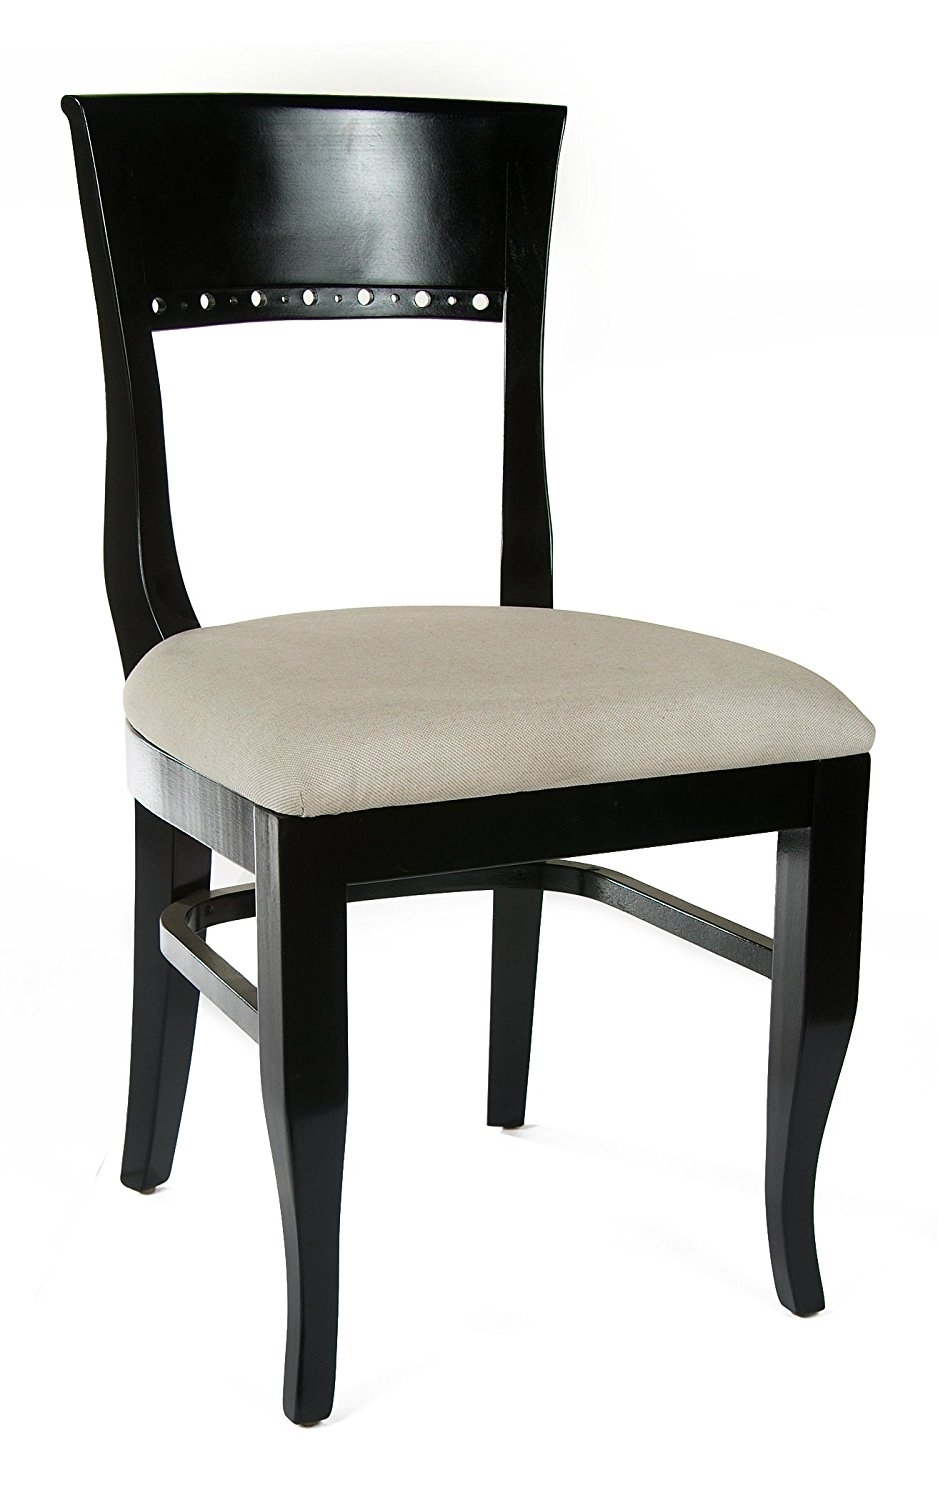 Beechwood Mountain BSD-6S-B Solid Beech Wood Side Chairs in Black for Kitchen and dining, set of 2 by Beechwood Mountain